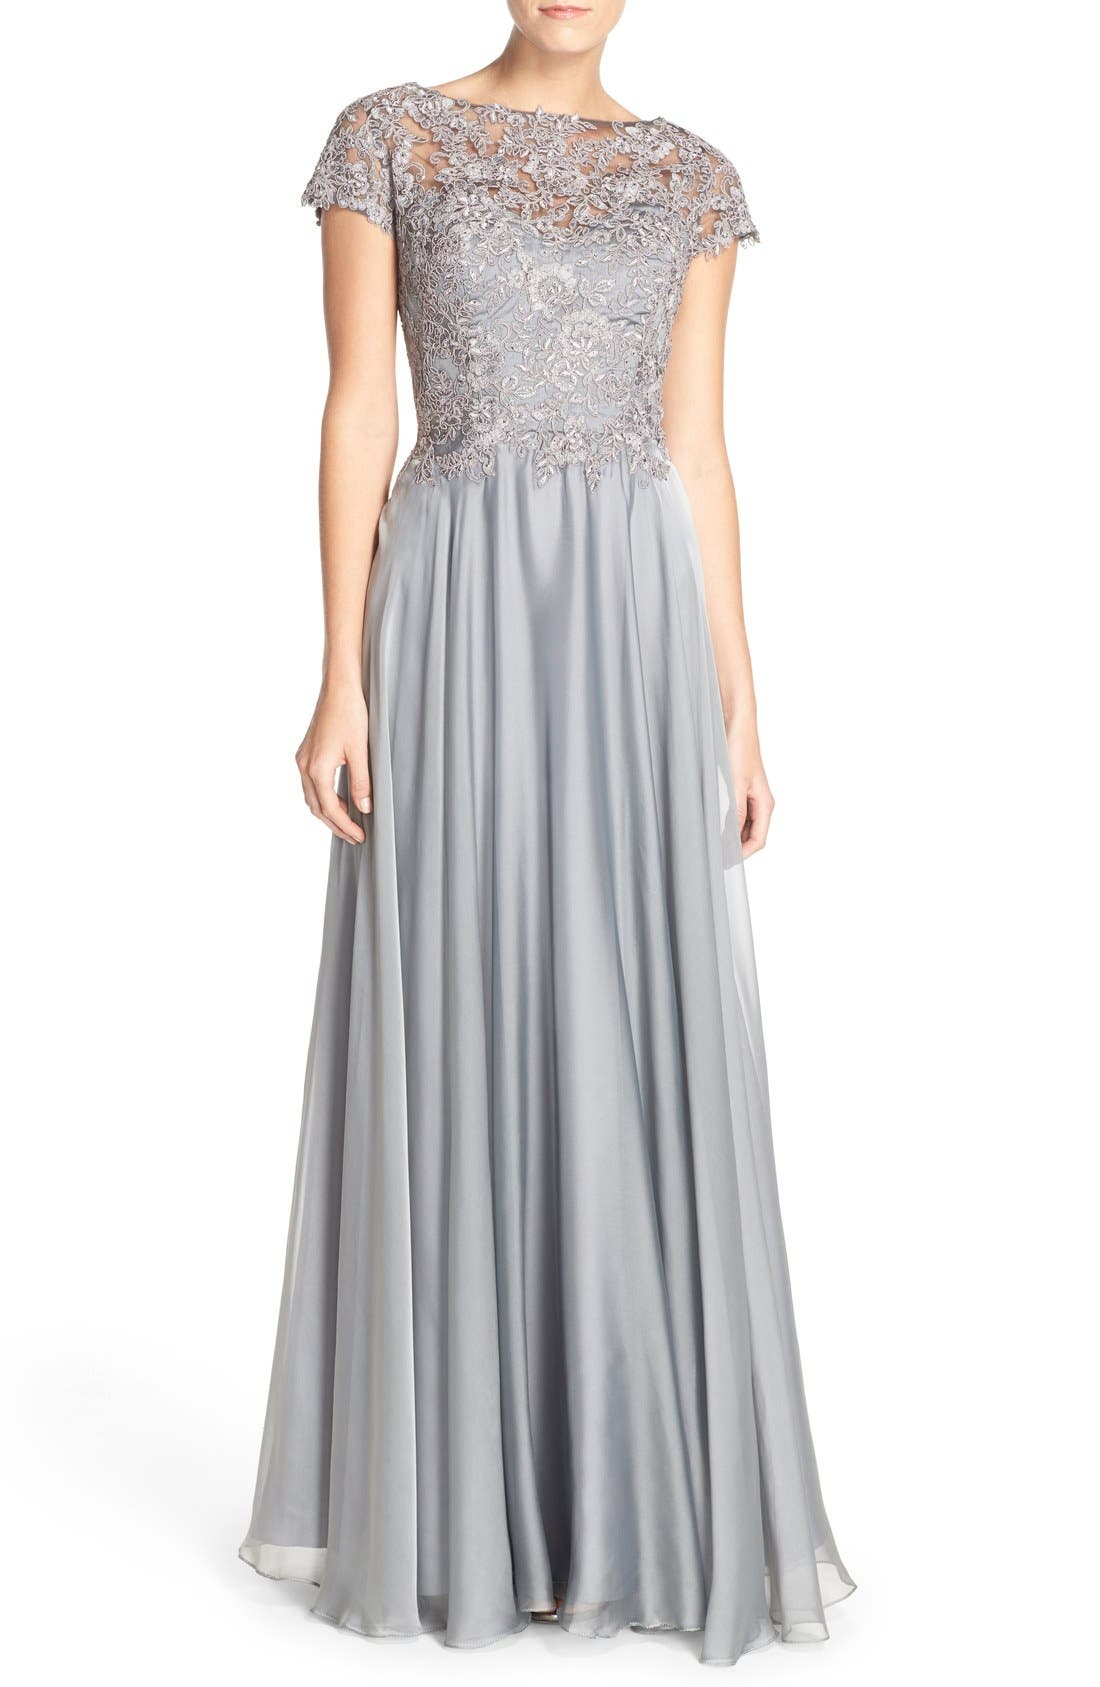 1940s Evening, Prom, Party, Formal, Ball Gowns Womens La Femme Embellished Lace  Satin Ballgown Size 20 similar to 20W-22W - Grey $450.00 AT vintagedancer.com